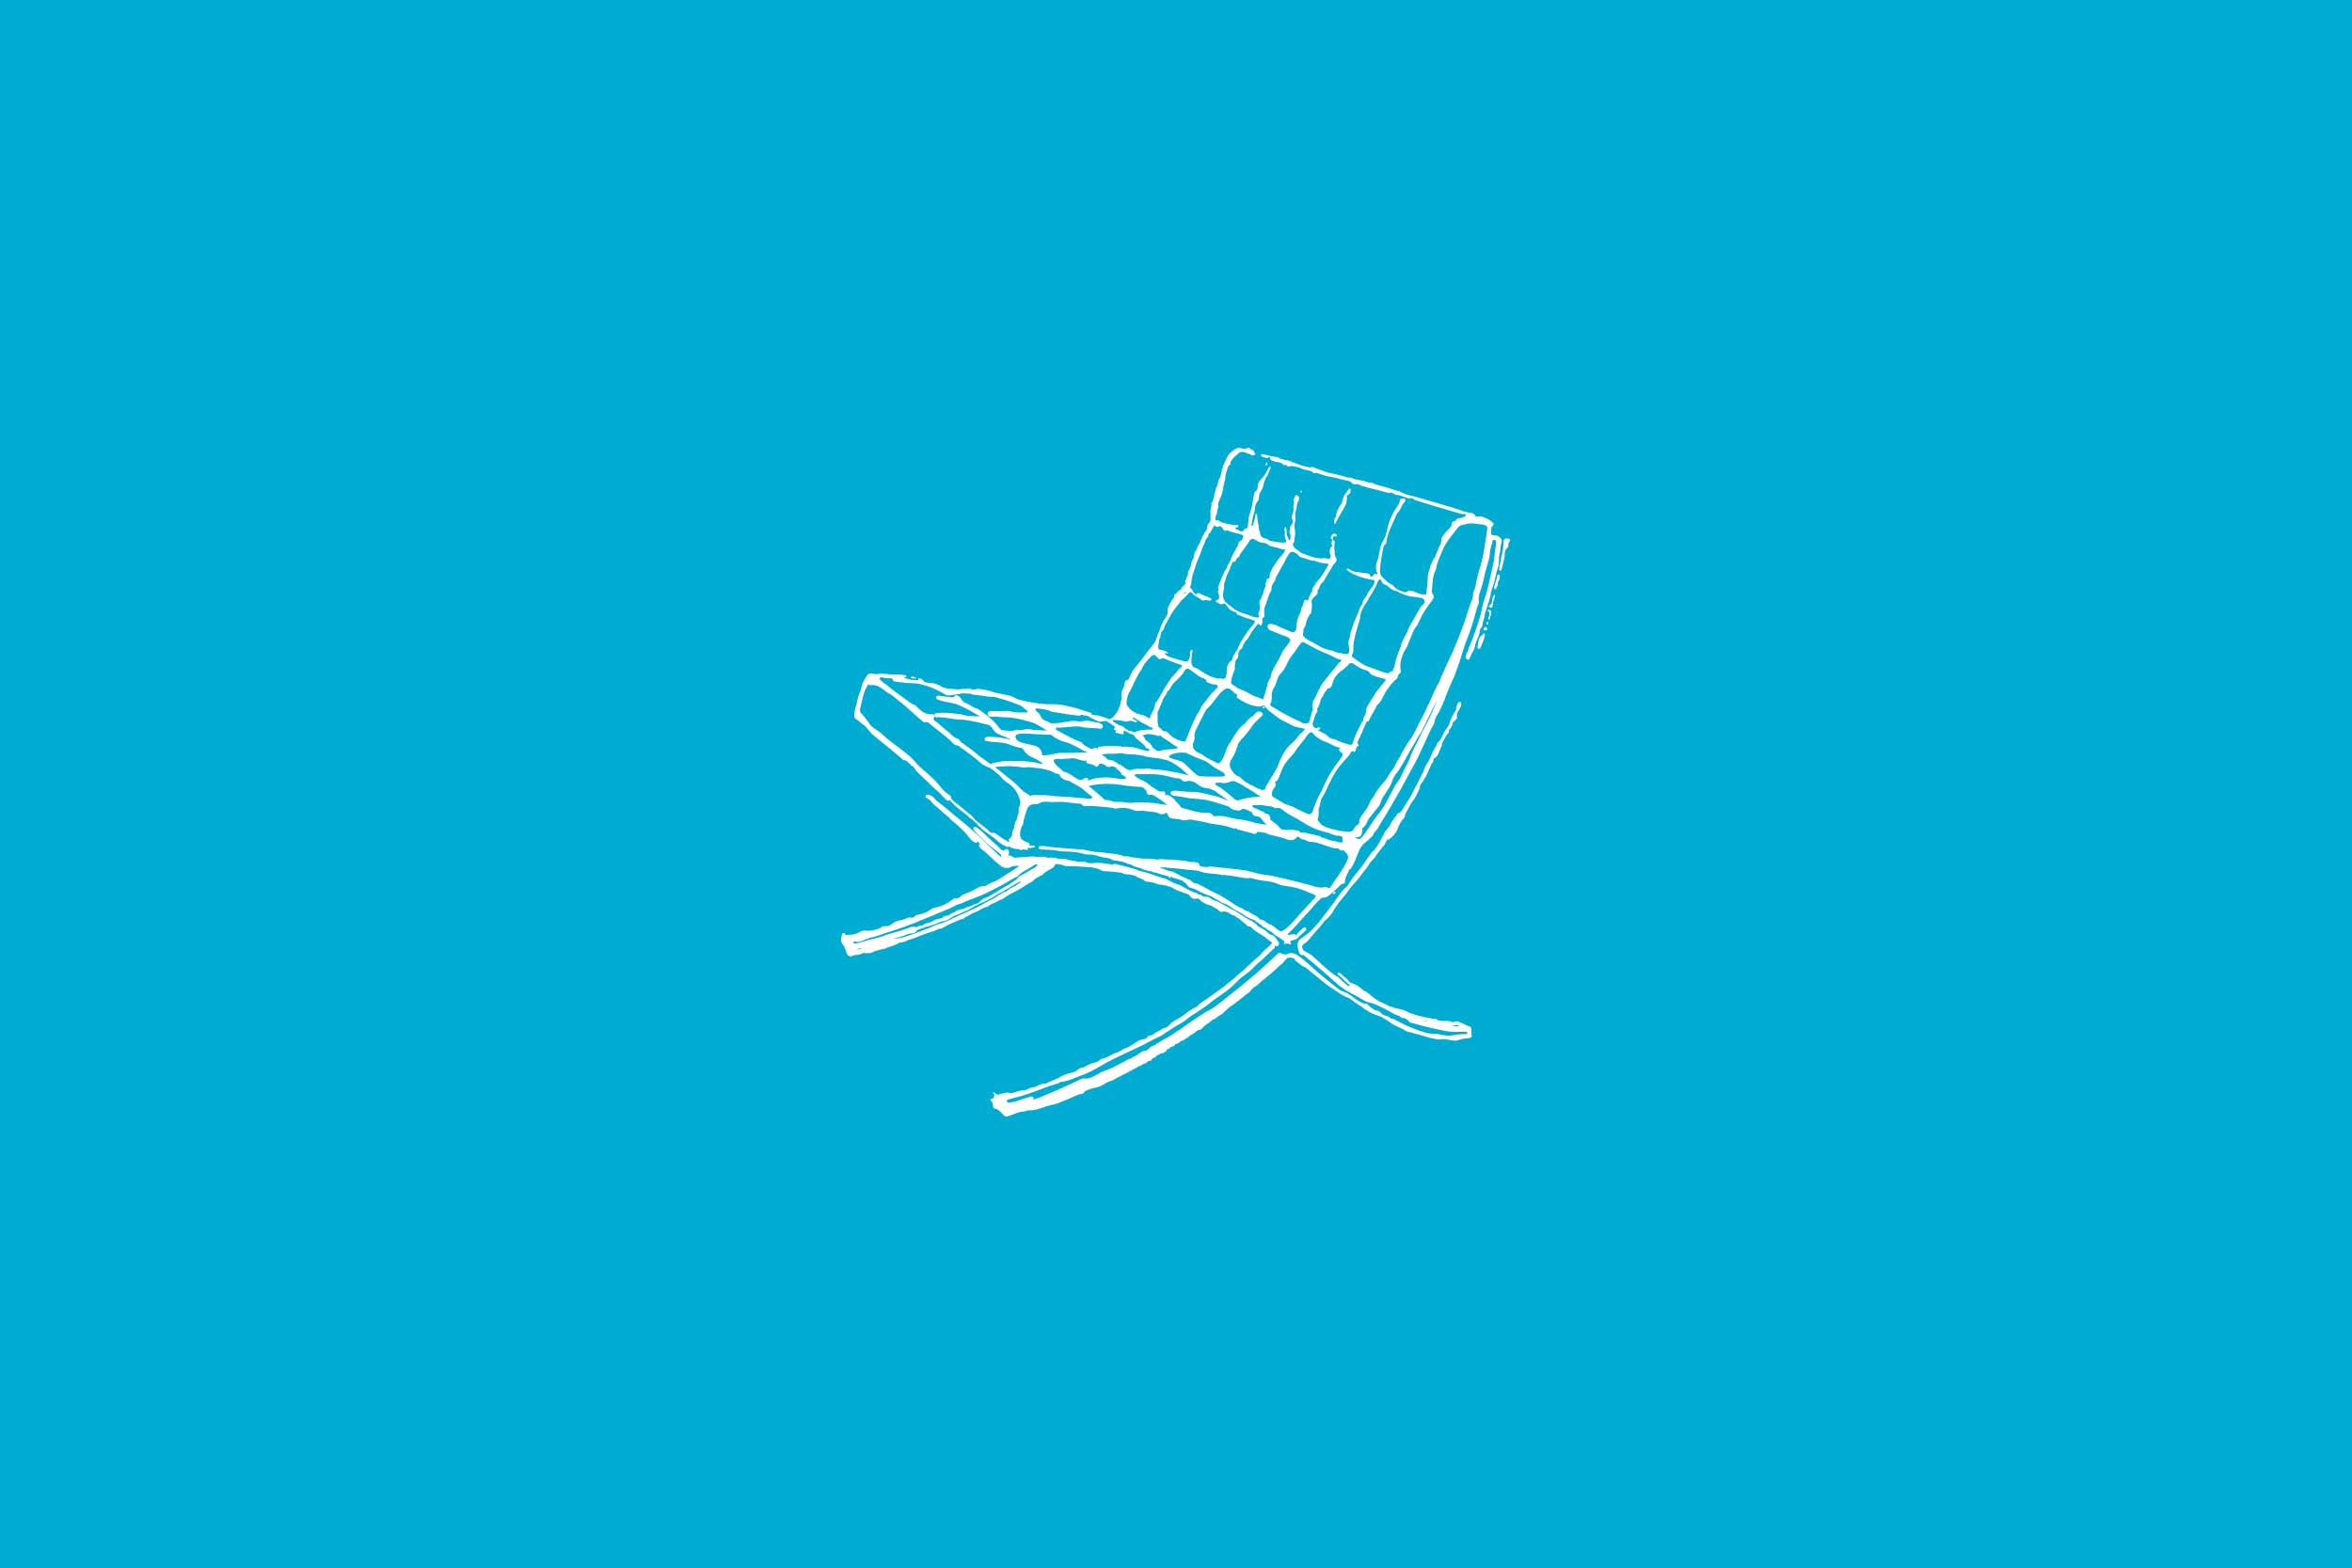 A Barcelona chair illustration created by MoJo Design that is a graphic element throughout the brand.